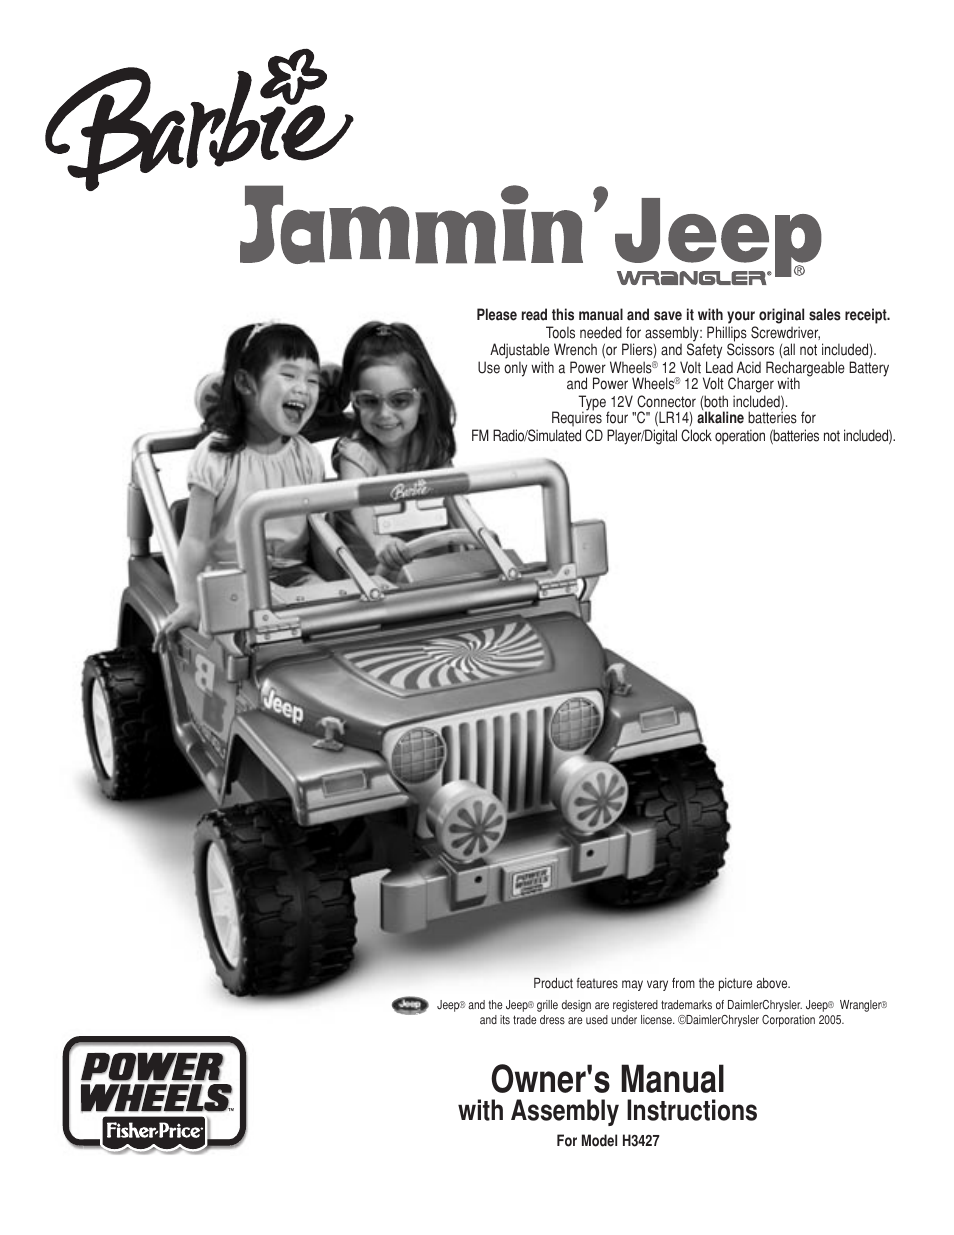 fisher price barbie jammin jeep h3427 user manual 28 pages rh manualsdir com Monster Truck Power Wheels Power Wheels Purple